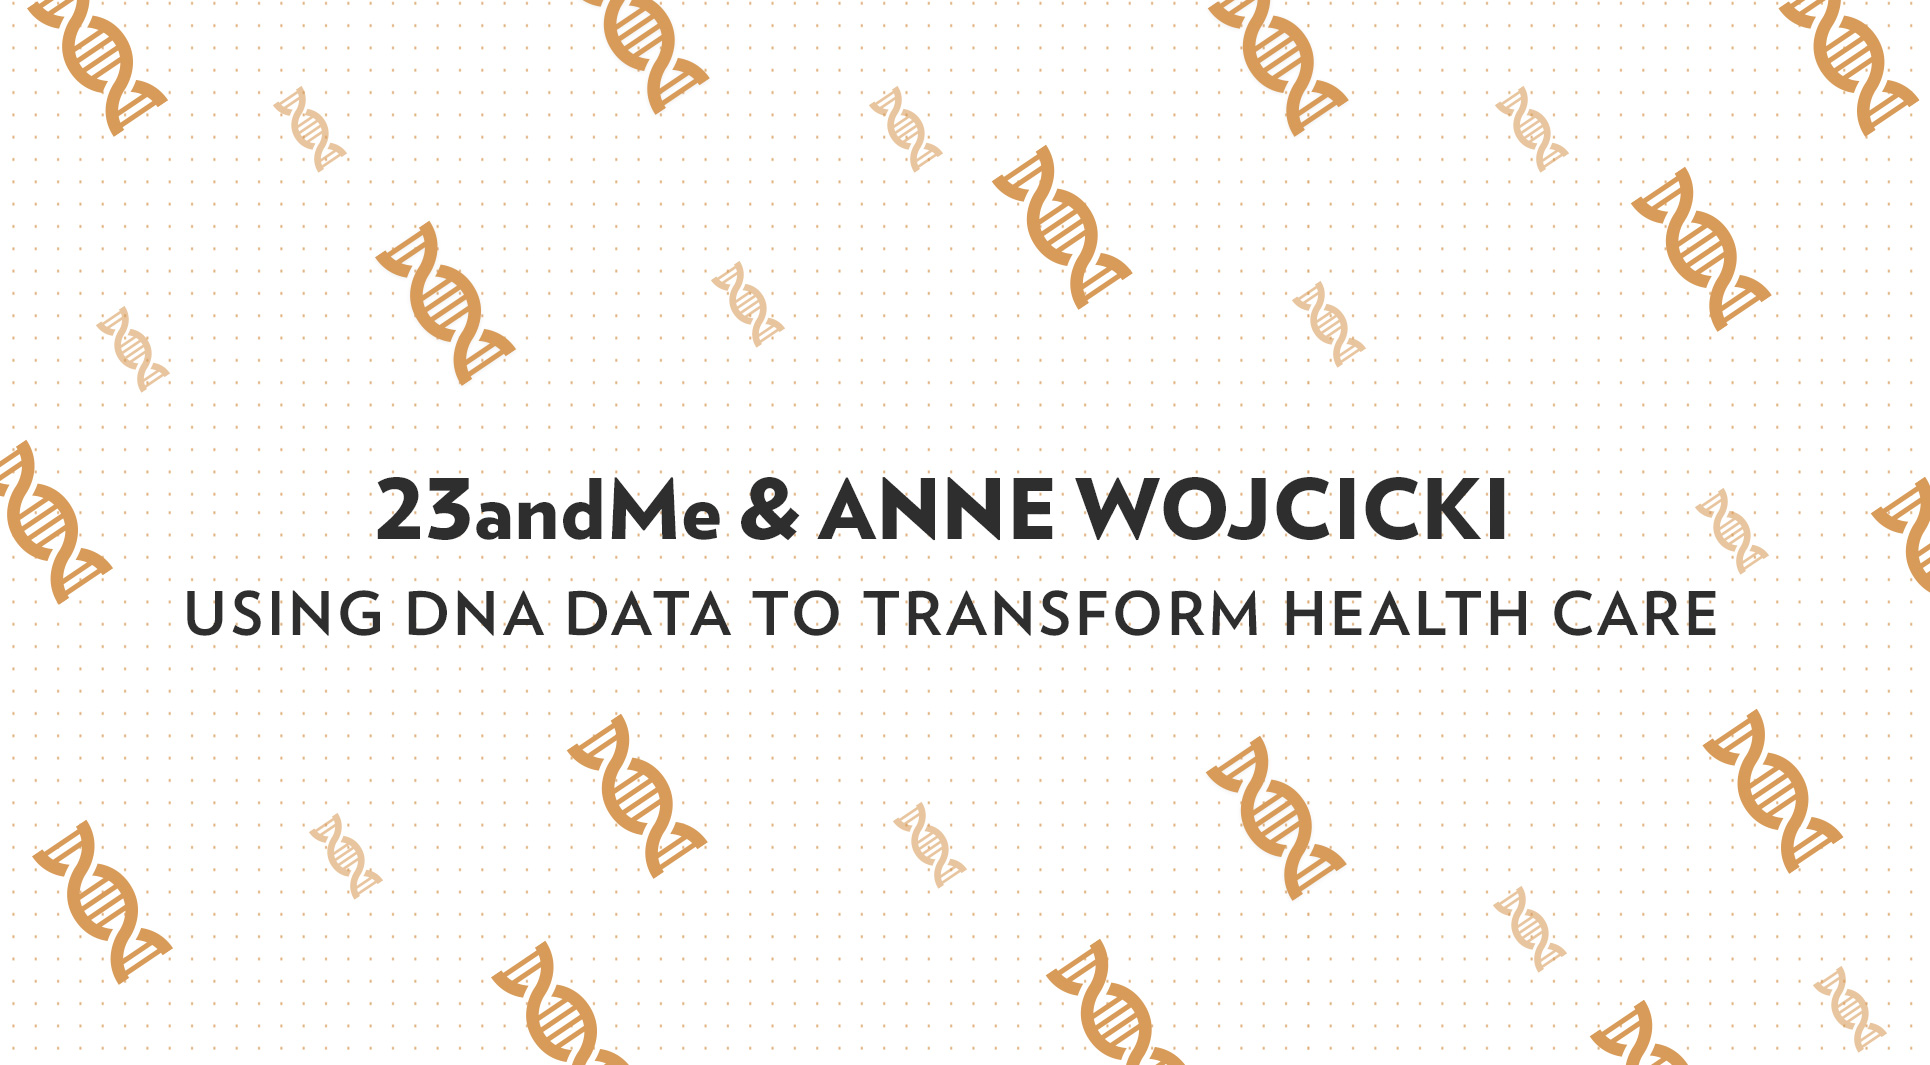 23andMe and Anne Wojcicki: Using DNA Data to Transform